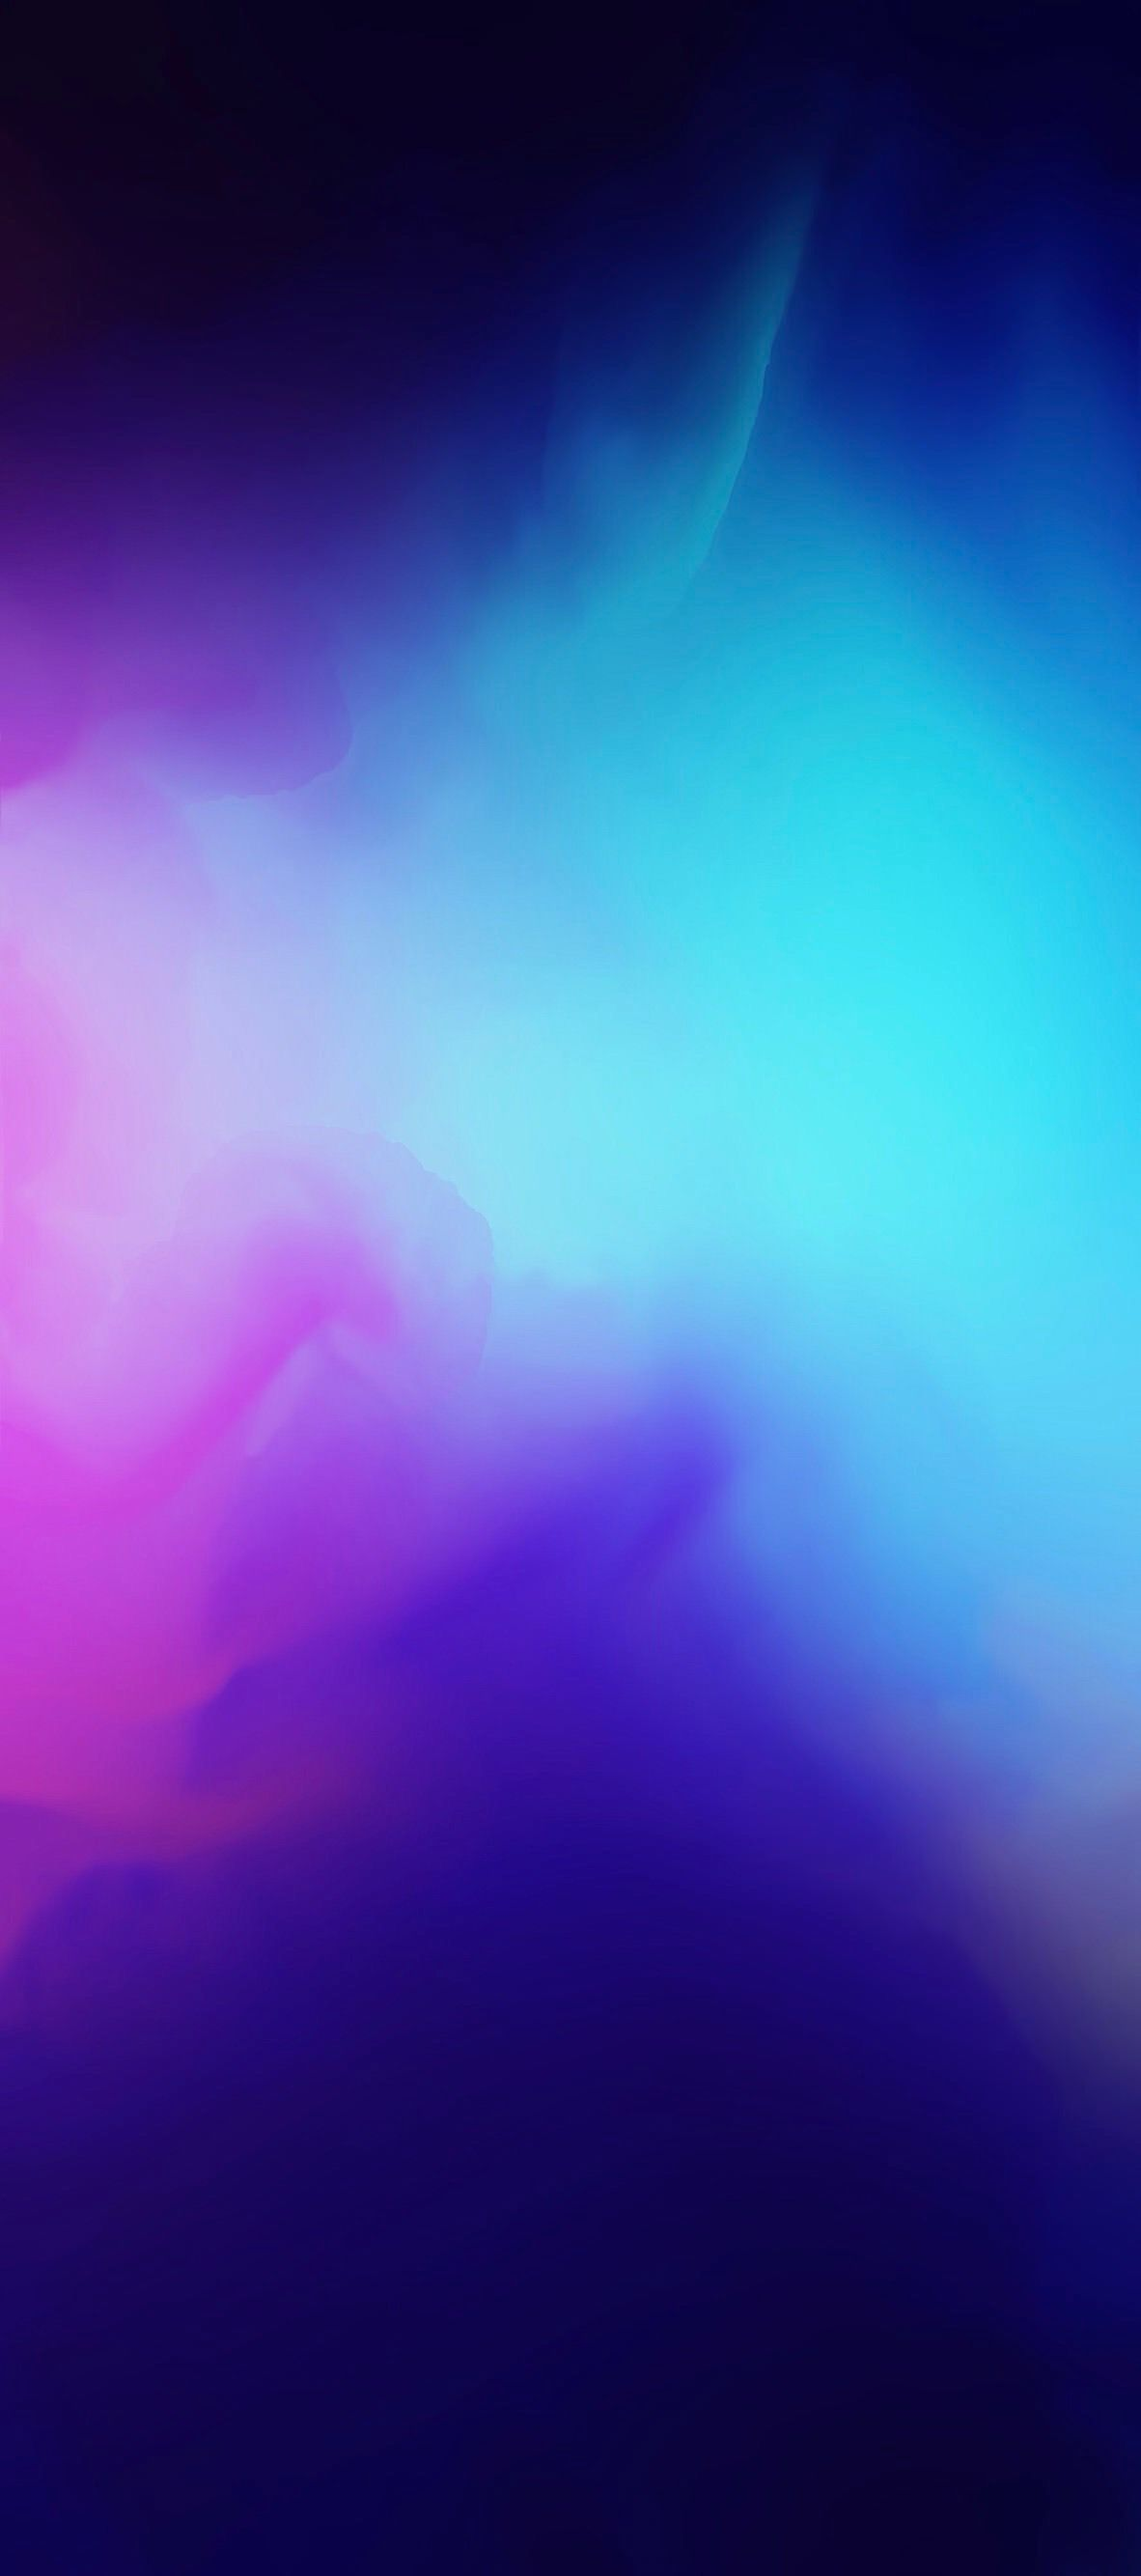 iOS 11, iPhone X, blue, purple, abstract, apple, wallpaper, iphone 8, clean, beauty, colour, iOS